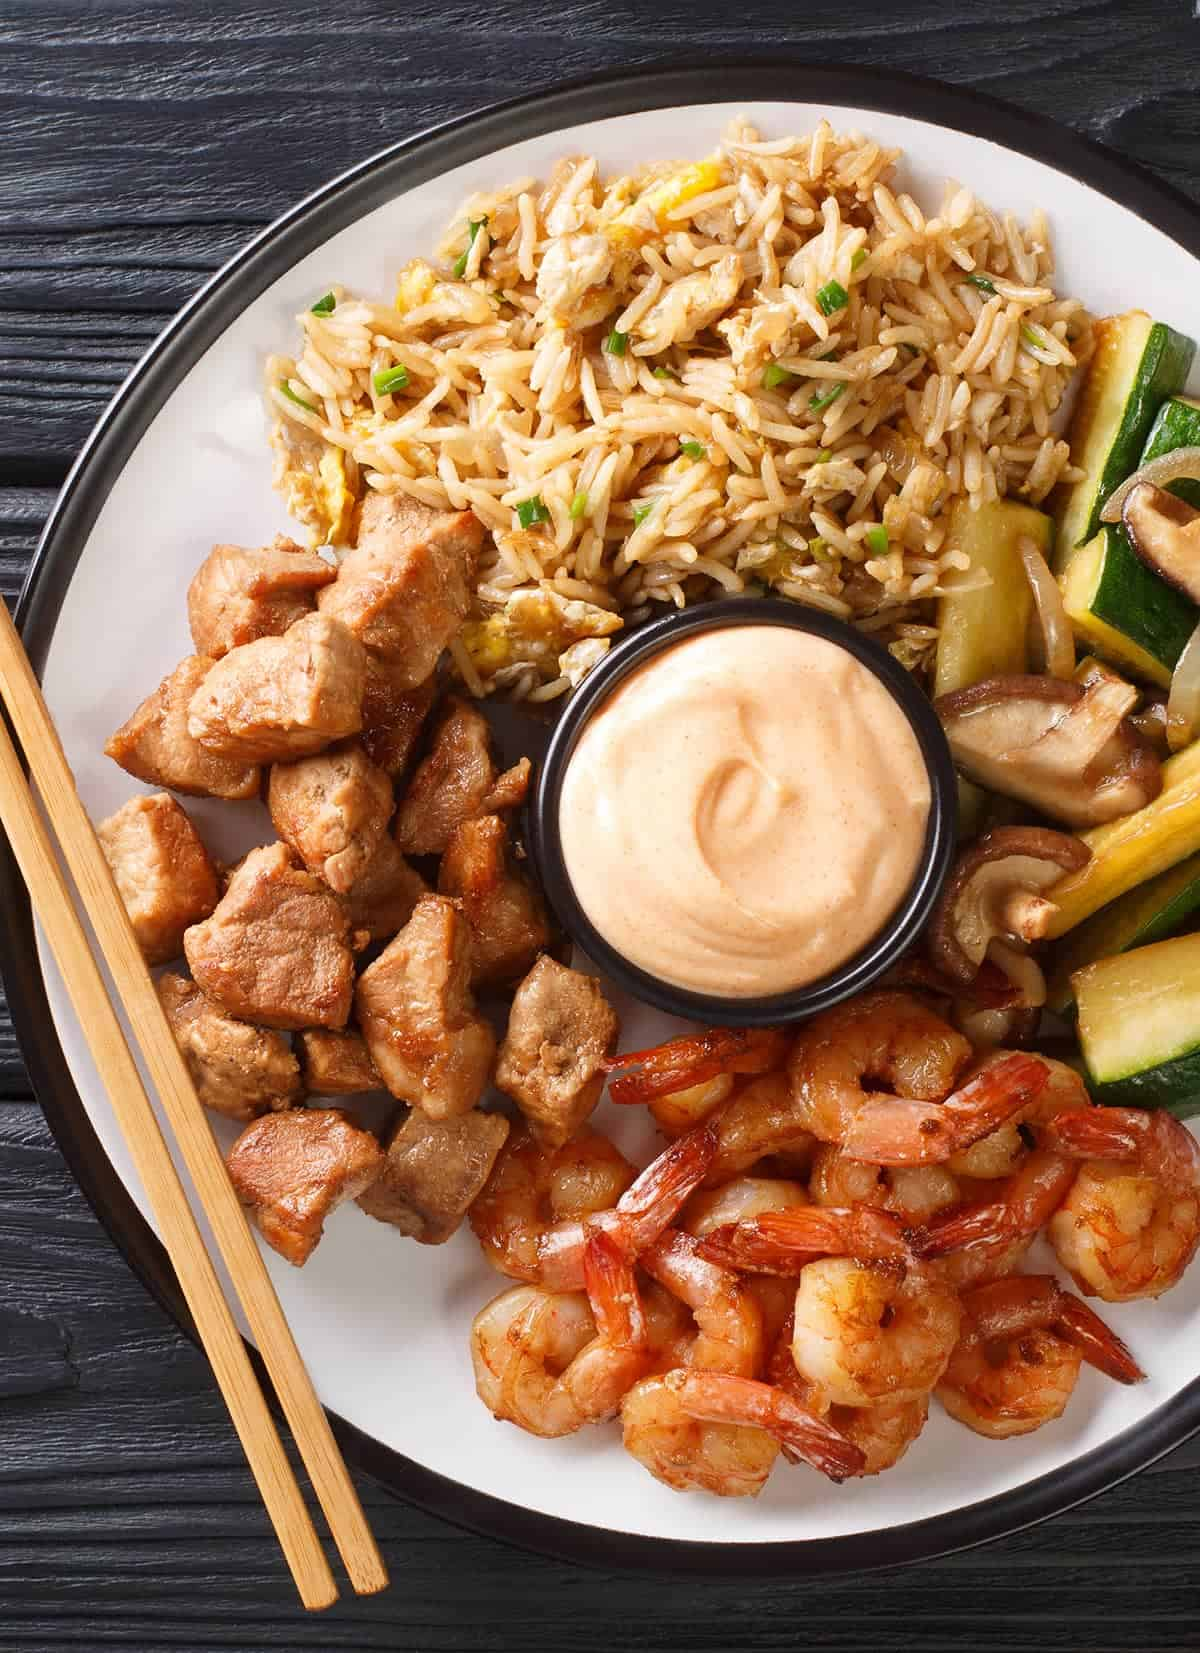 Seasoned shrimp and diced chicken hibachi with zucchini, mushrooms, and fried rice with cup of yum yum sauce on white plate with chopsticks.